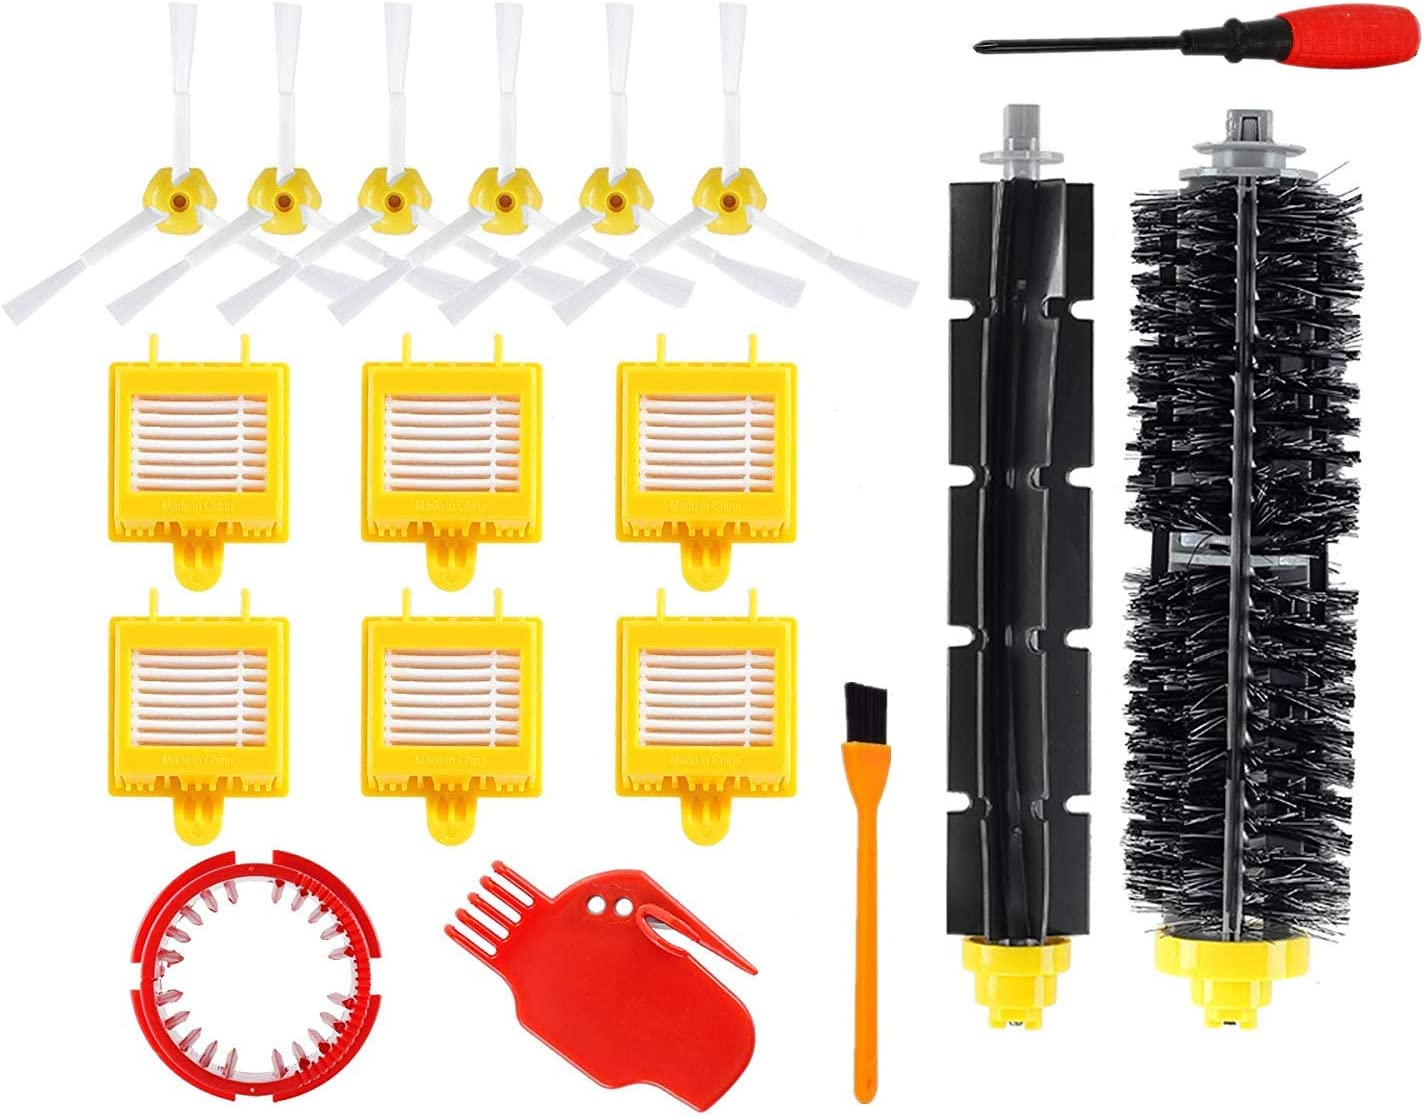 XindiHome Replacement Parts Kit for iRobot Roomba 700 760 770 780 790 Vacuum Cleaner Kit 24 Pack